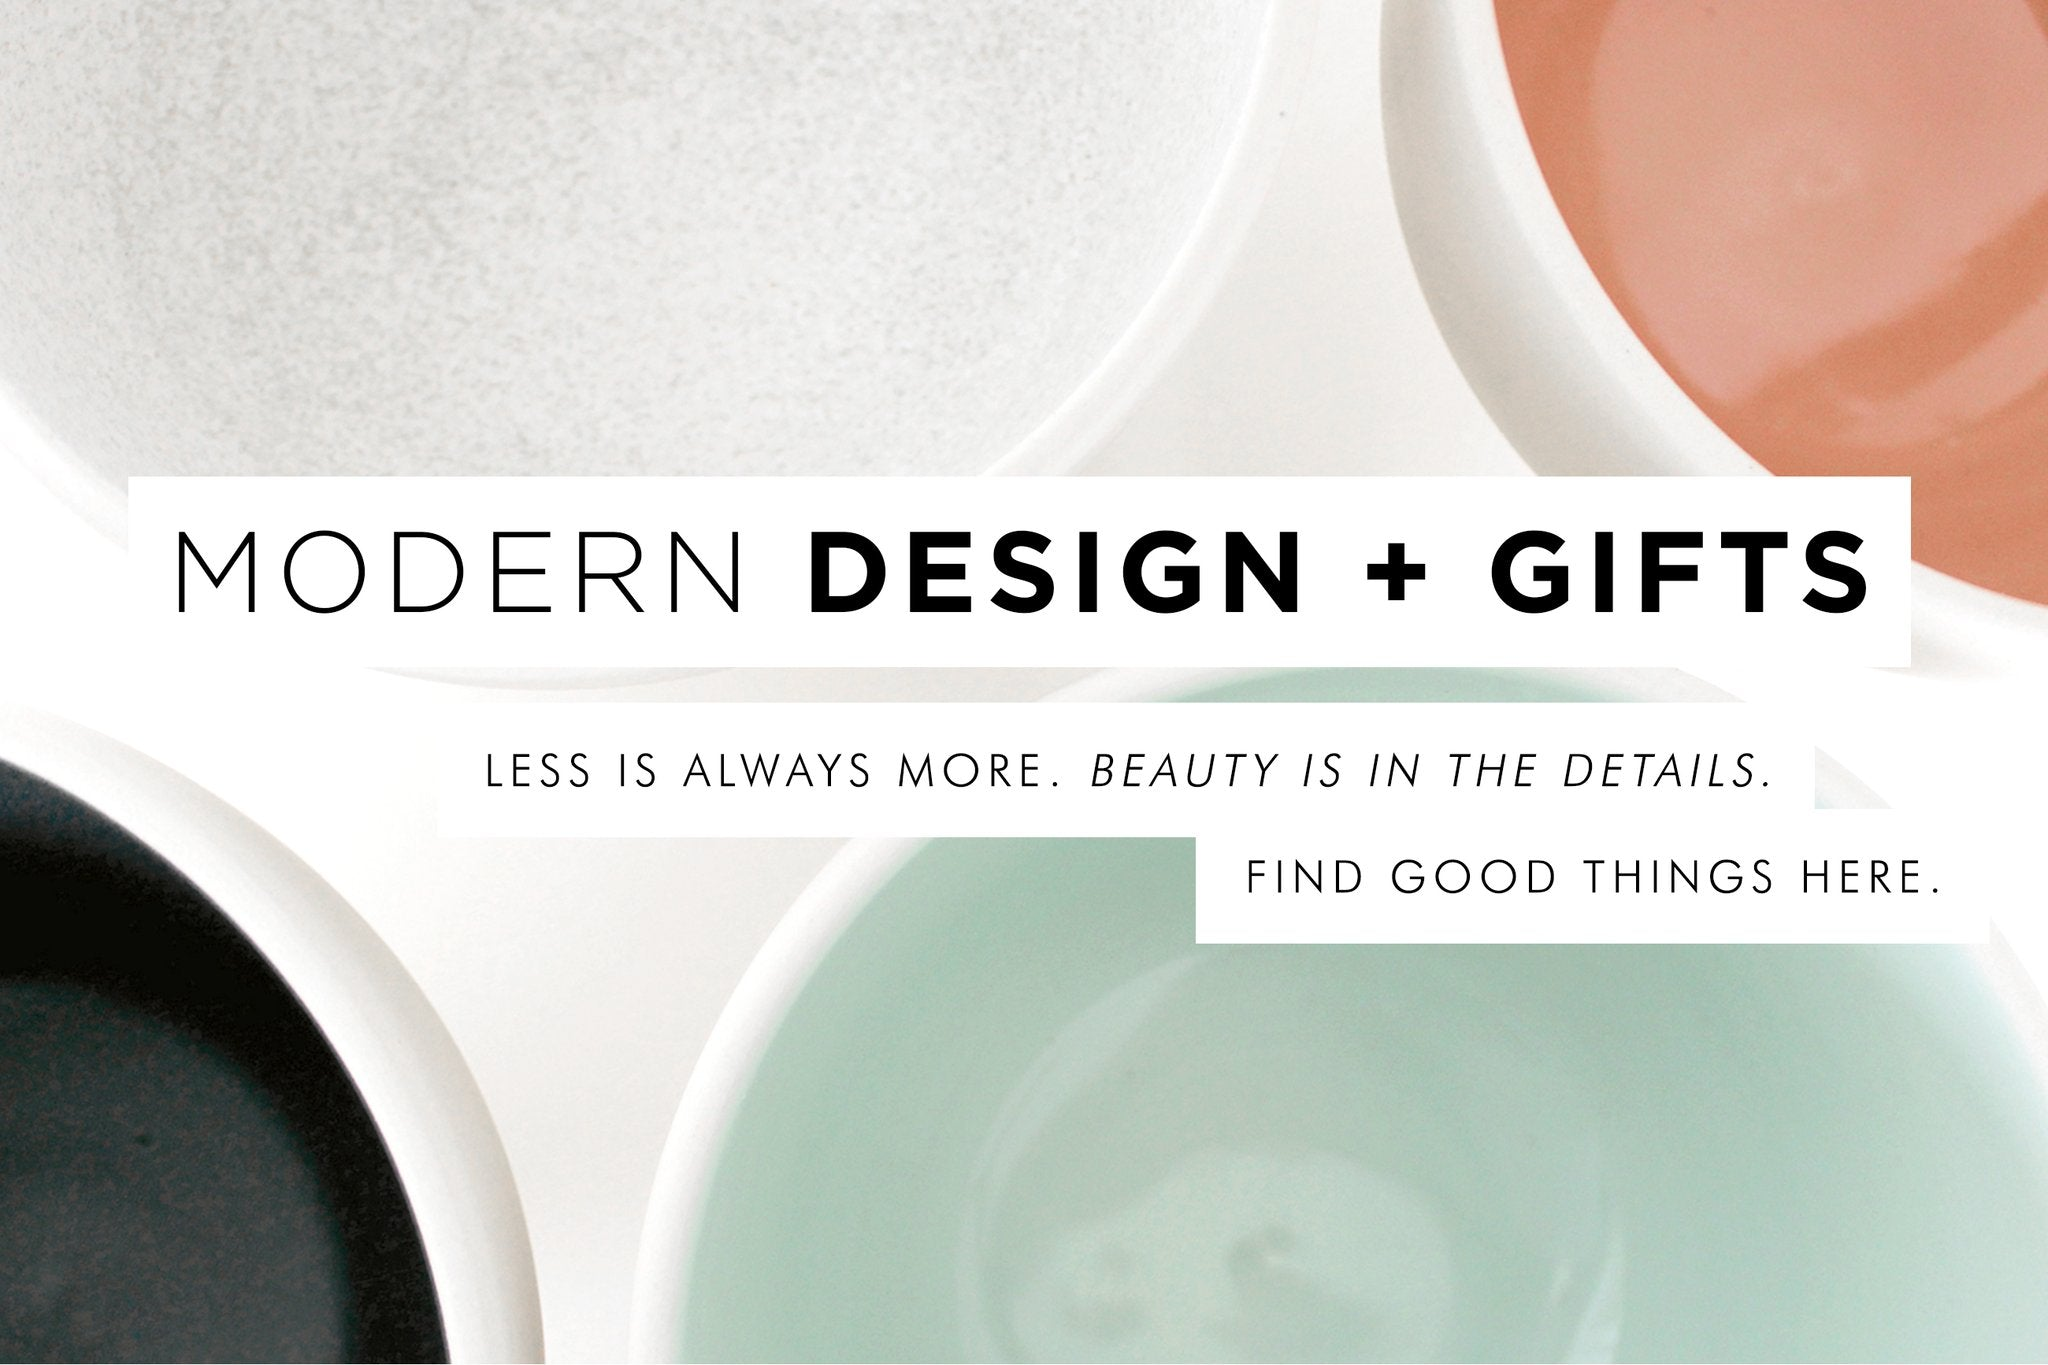 Give thoughtfully. Shop our collection of thoughtfully made, independent design.